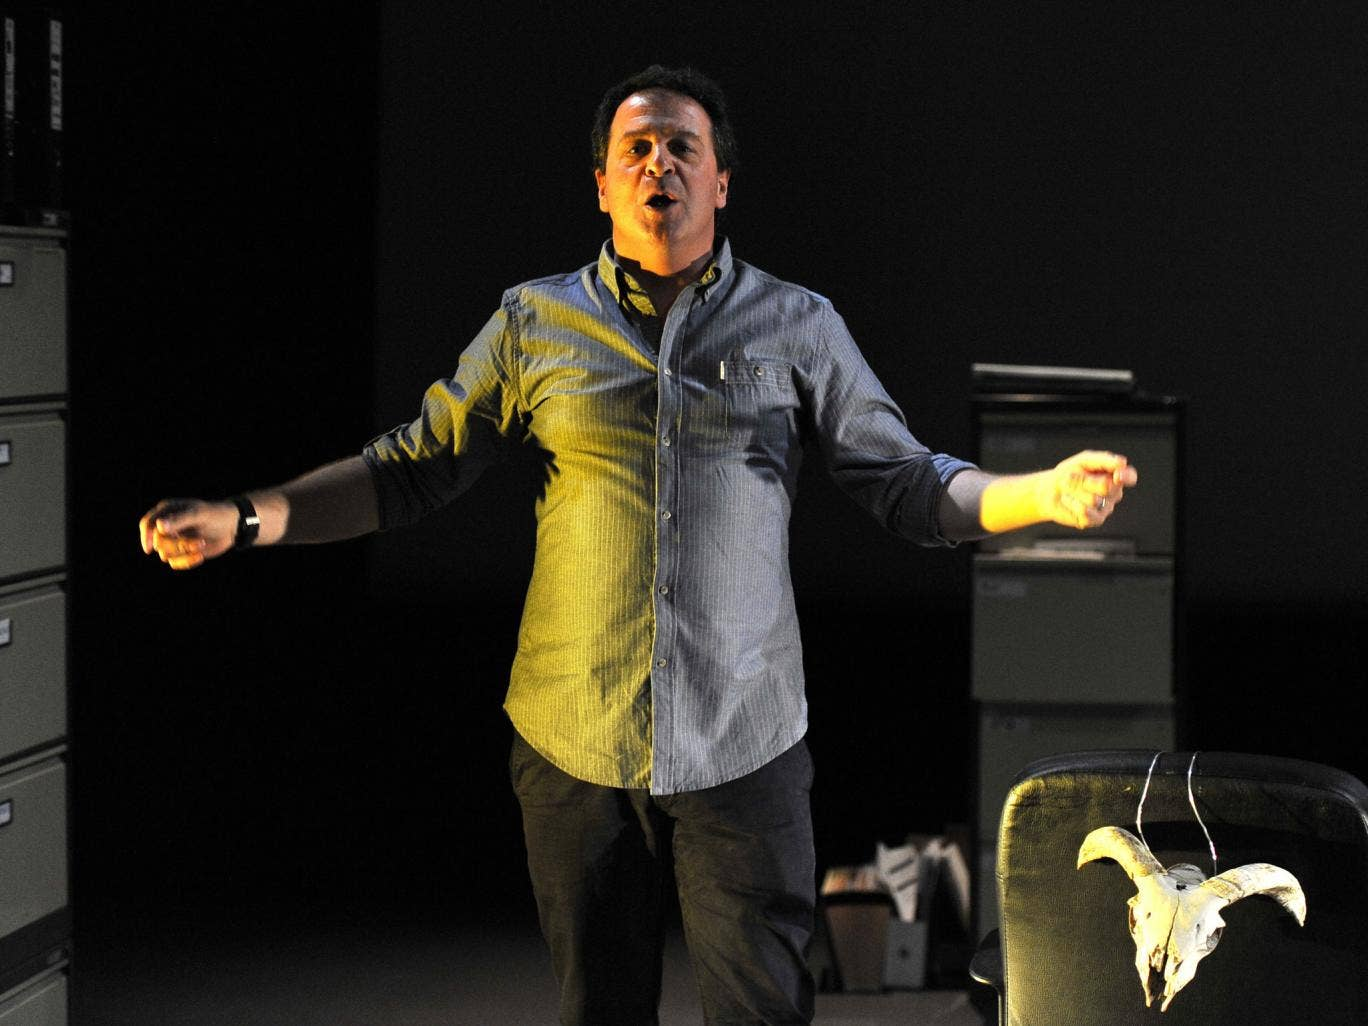 Mark Thomas in 'Cuckooed', directed by Emma Callander at the Traverse Theatre in Edinburgh